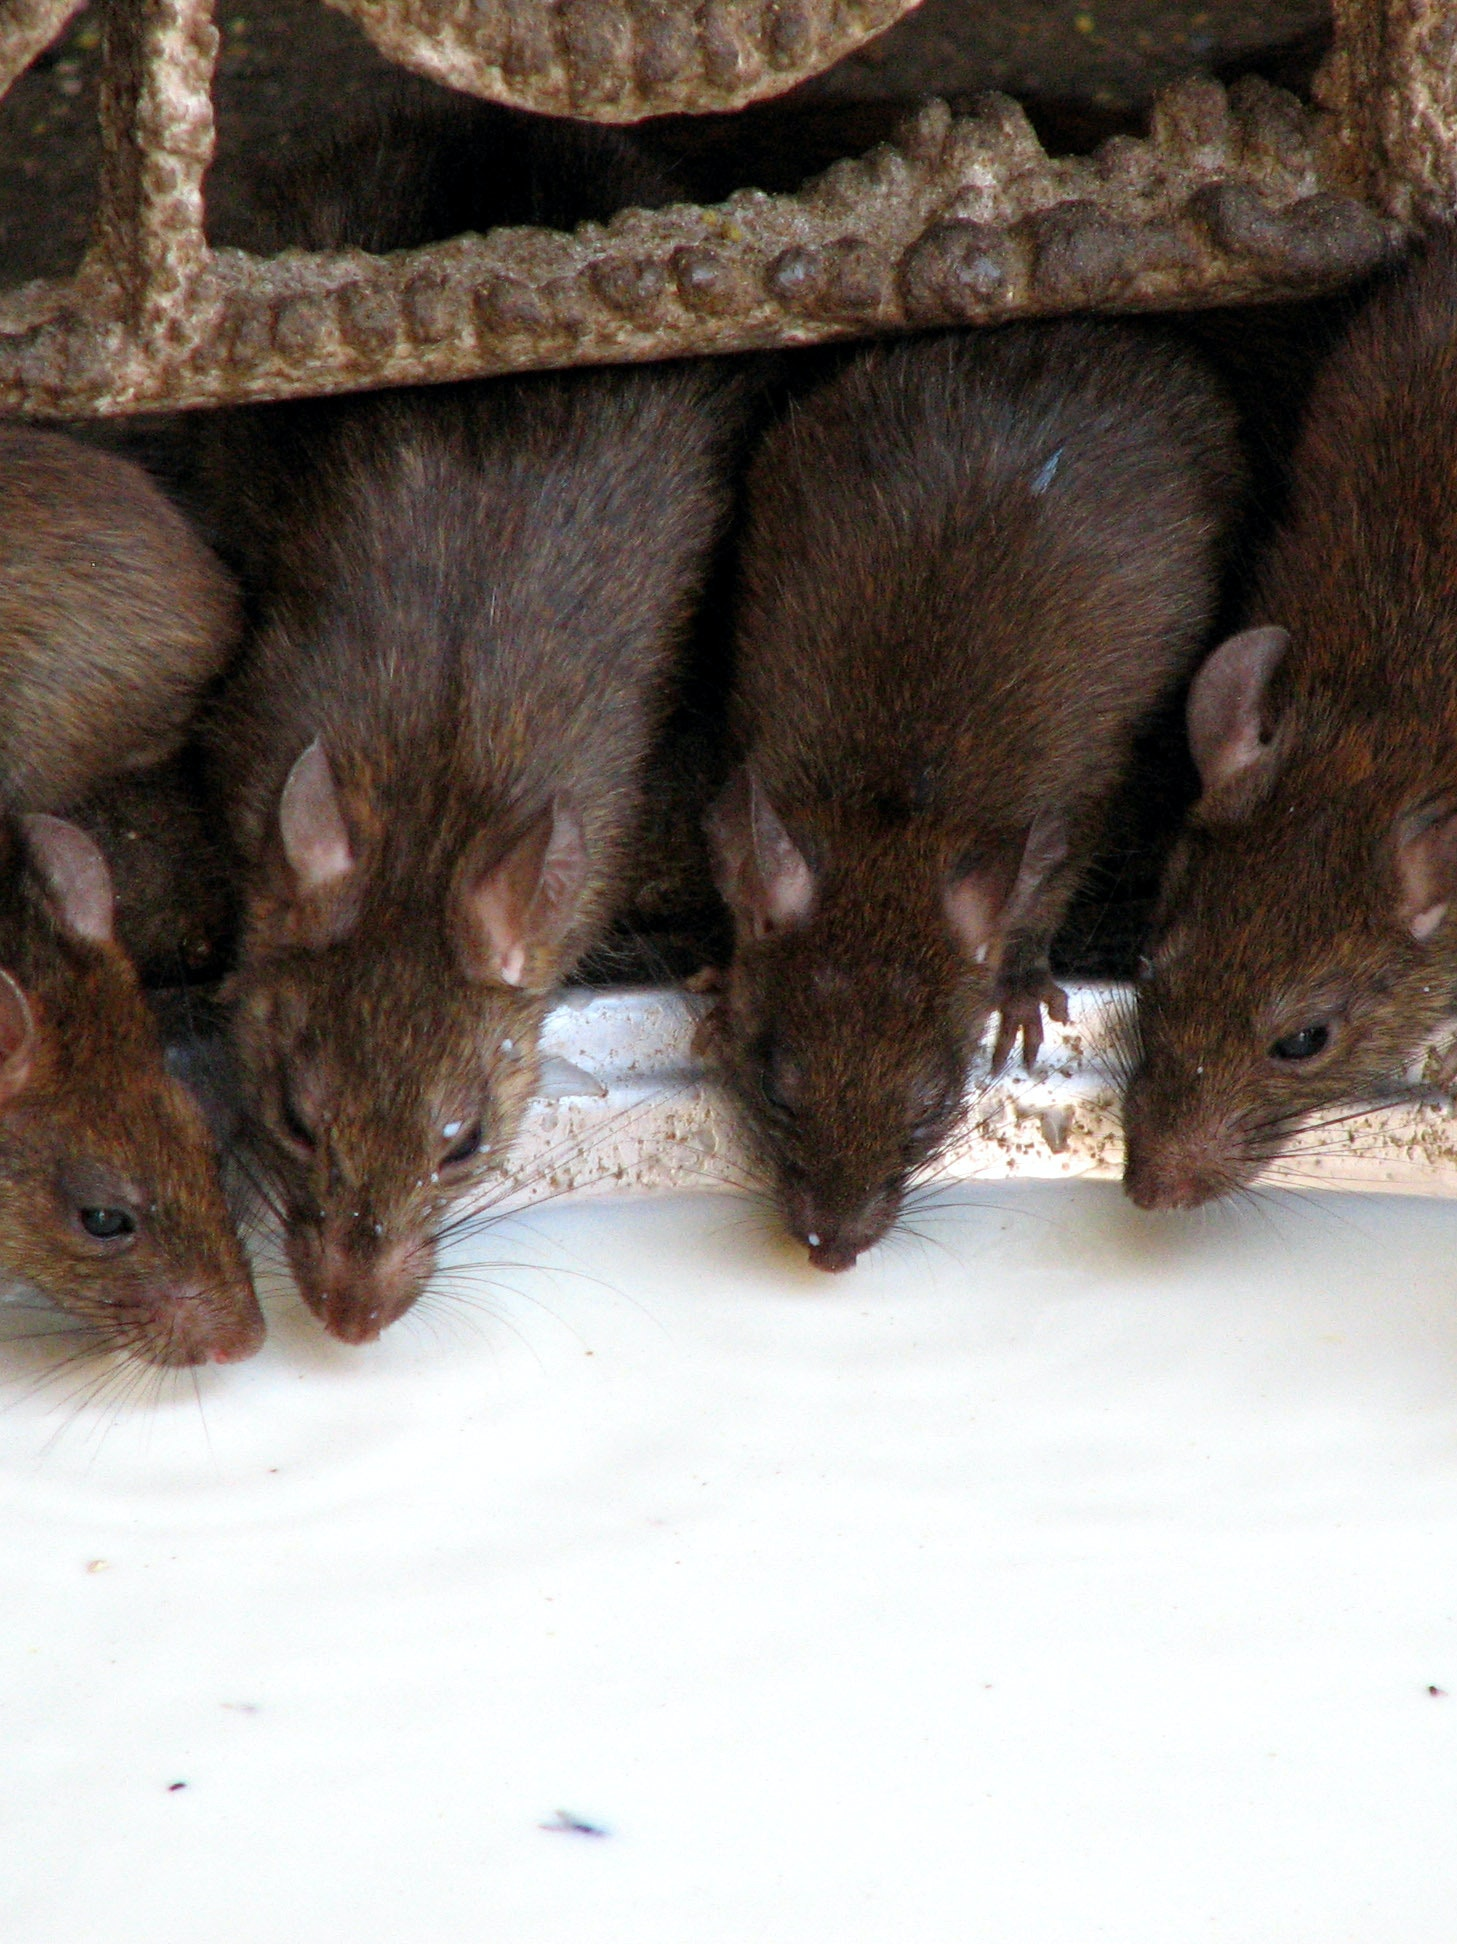 Some rats and related rodents in the United States still carry Yersinia pestis, the microbe that causes plague.